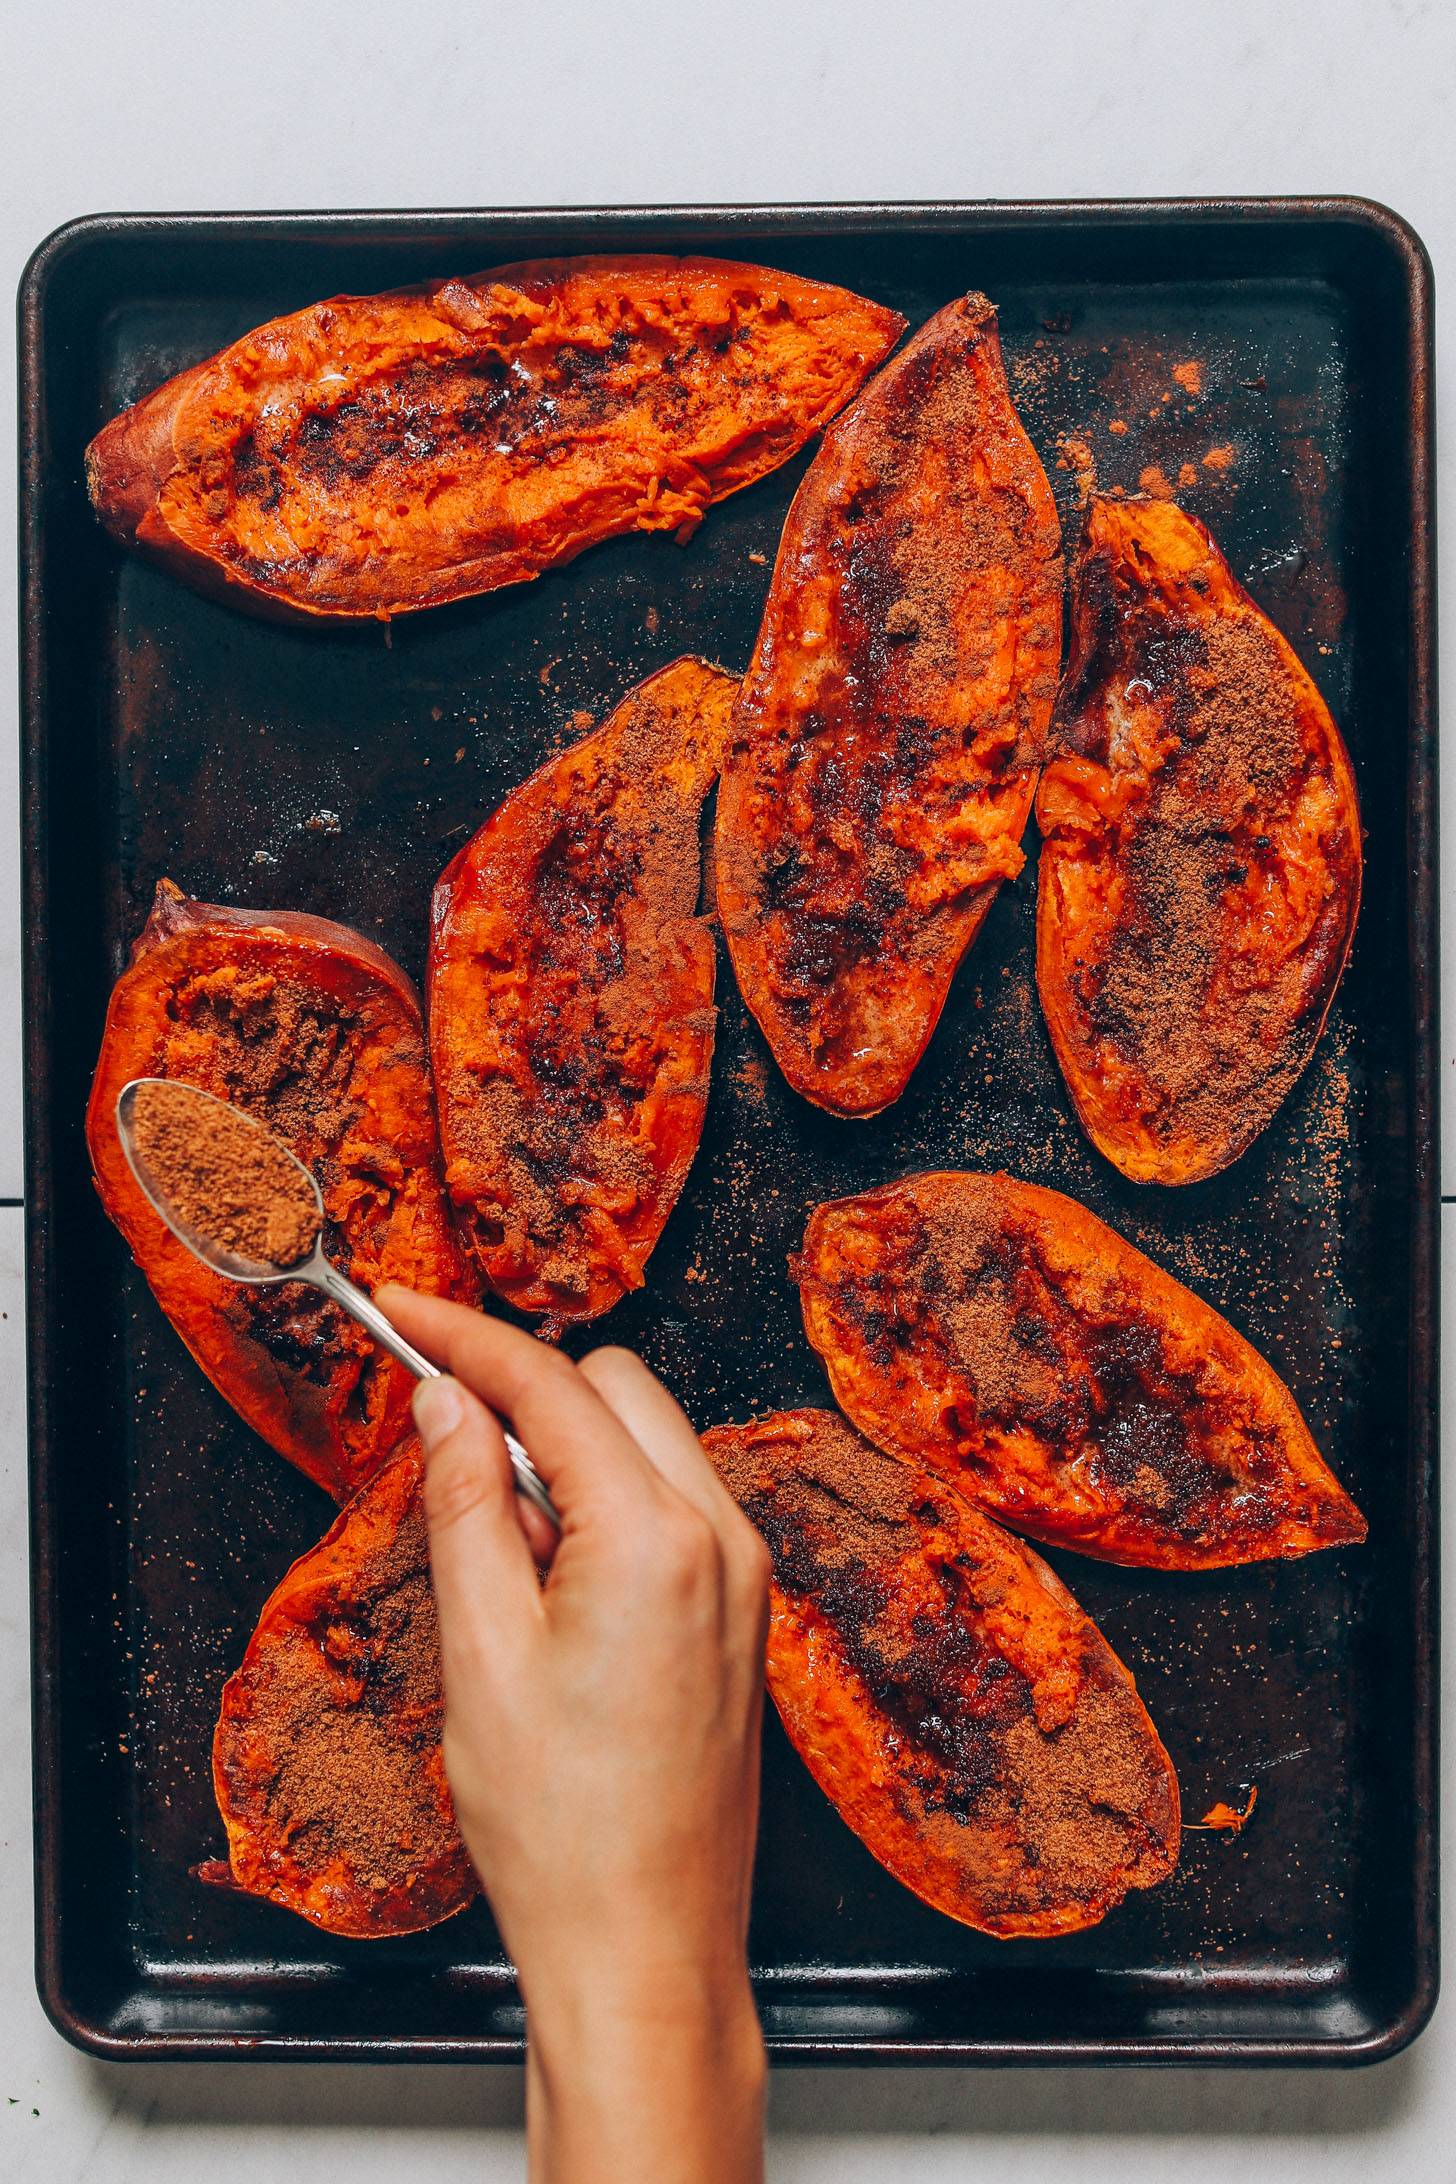 Sprinkling coconut sugar on halved, baked sweet potatoes to make Sweet Potato Casserole Boats